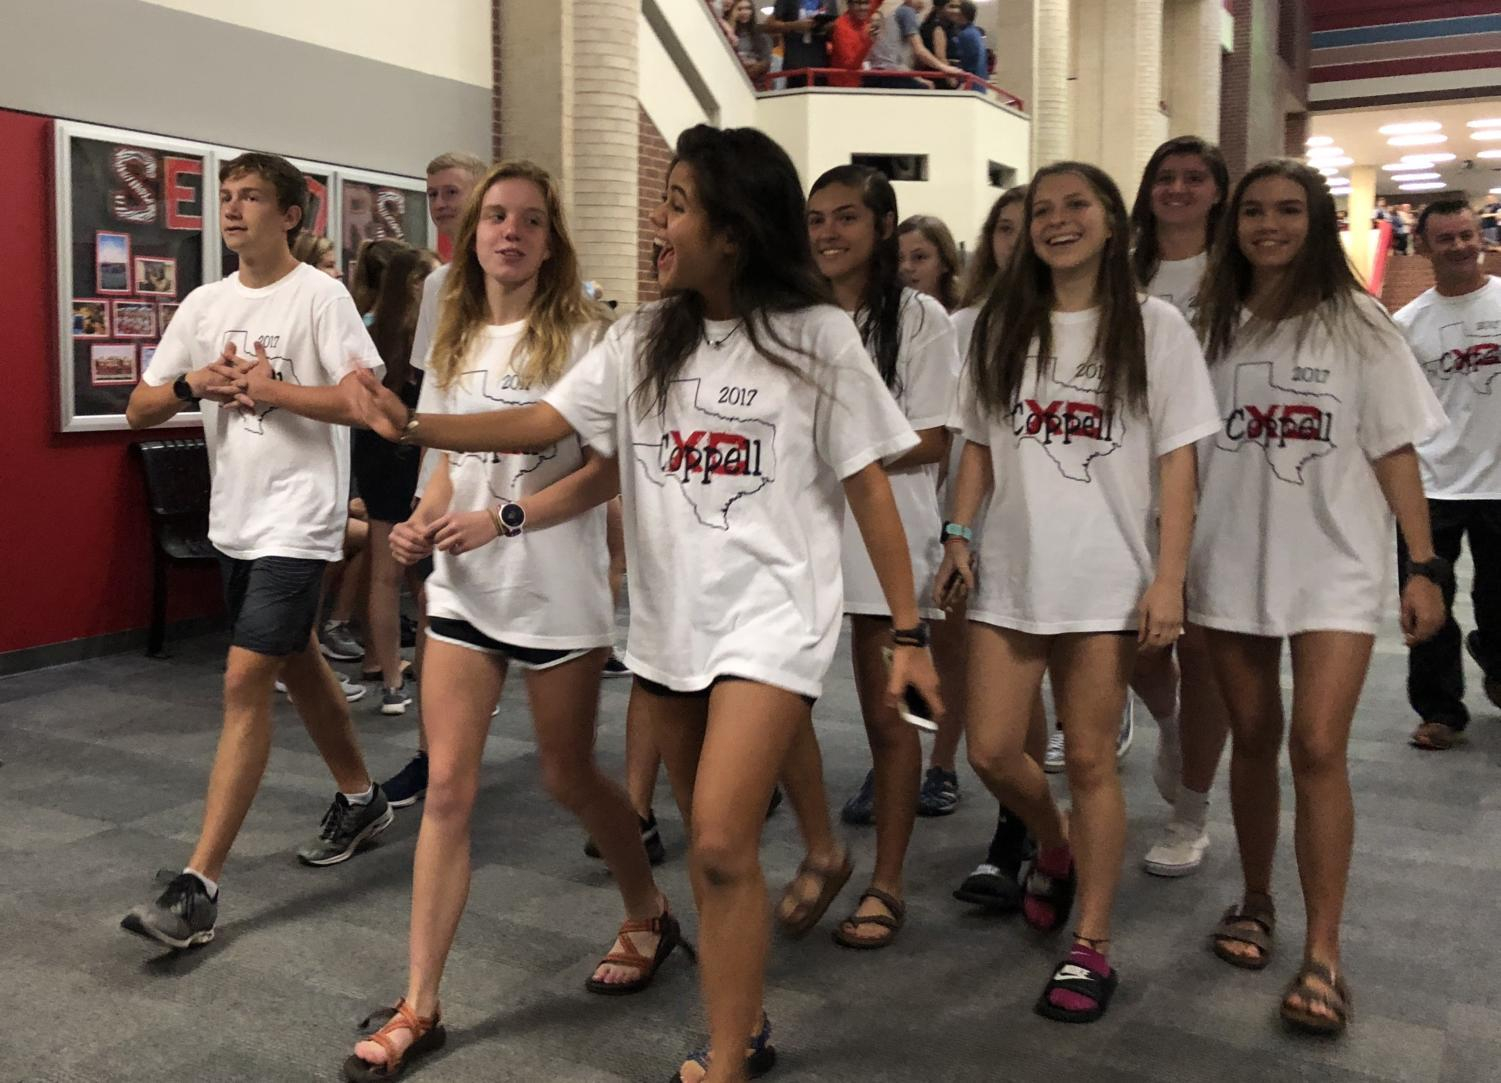 The Coppell High School cross country team had a successful season with the girls team claiming the Class 6A Region II championship. Today during first period, the team walked down the main CHS hallway for their state send-off.